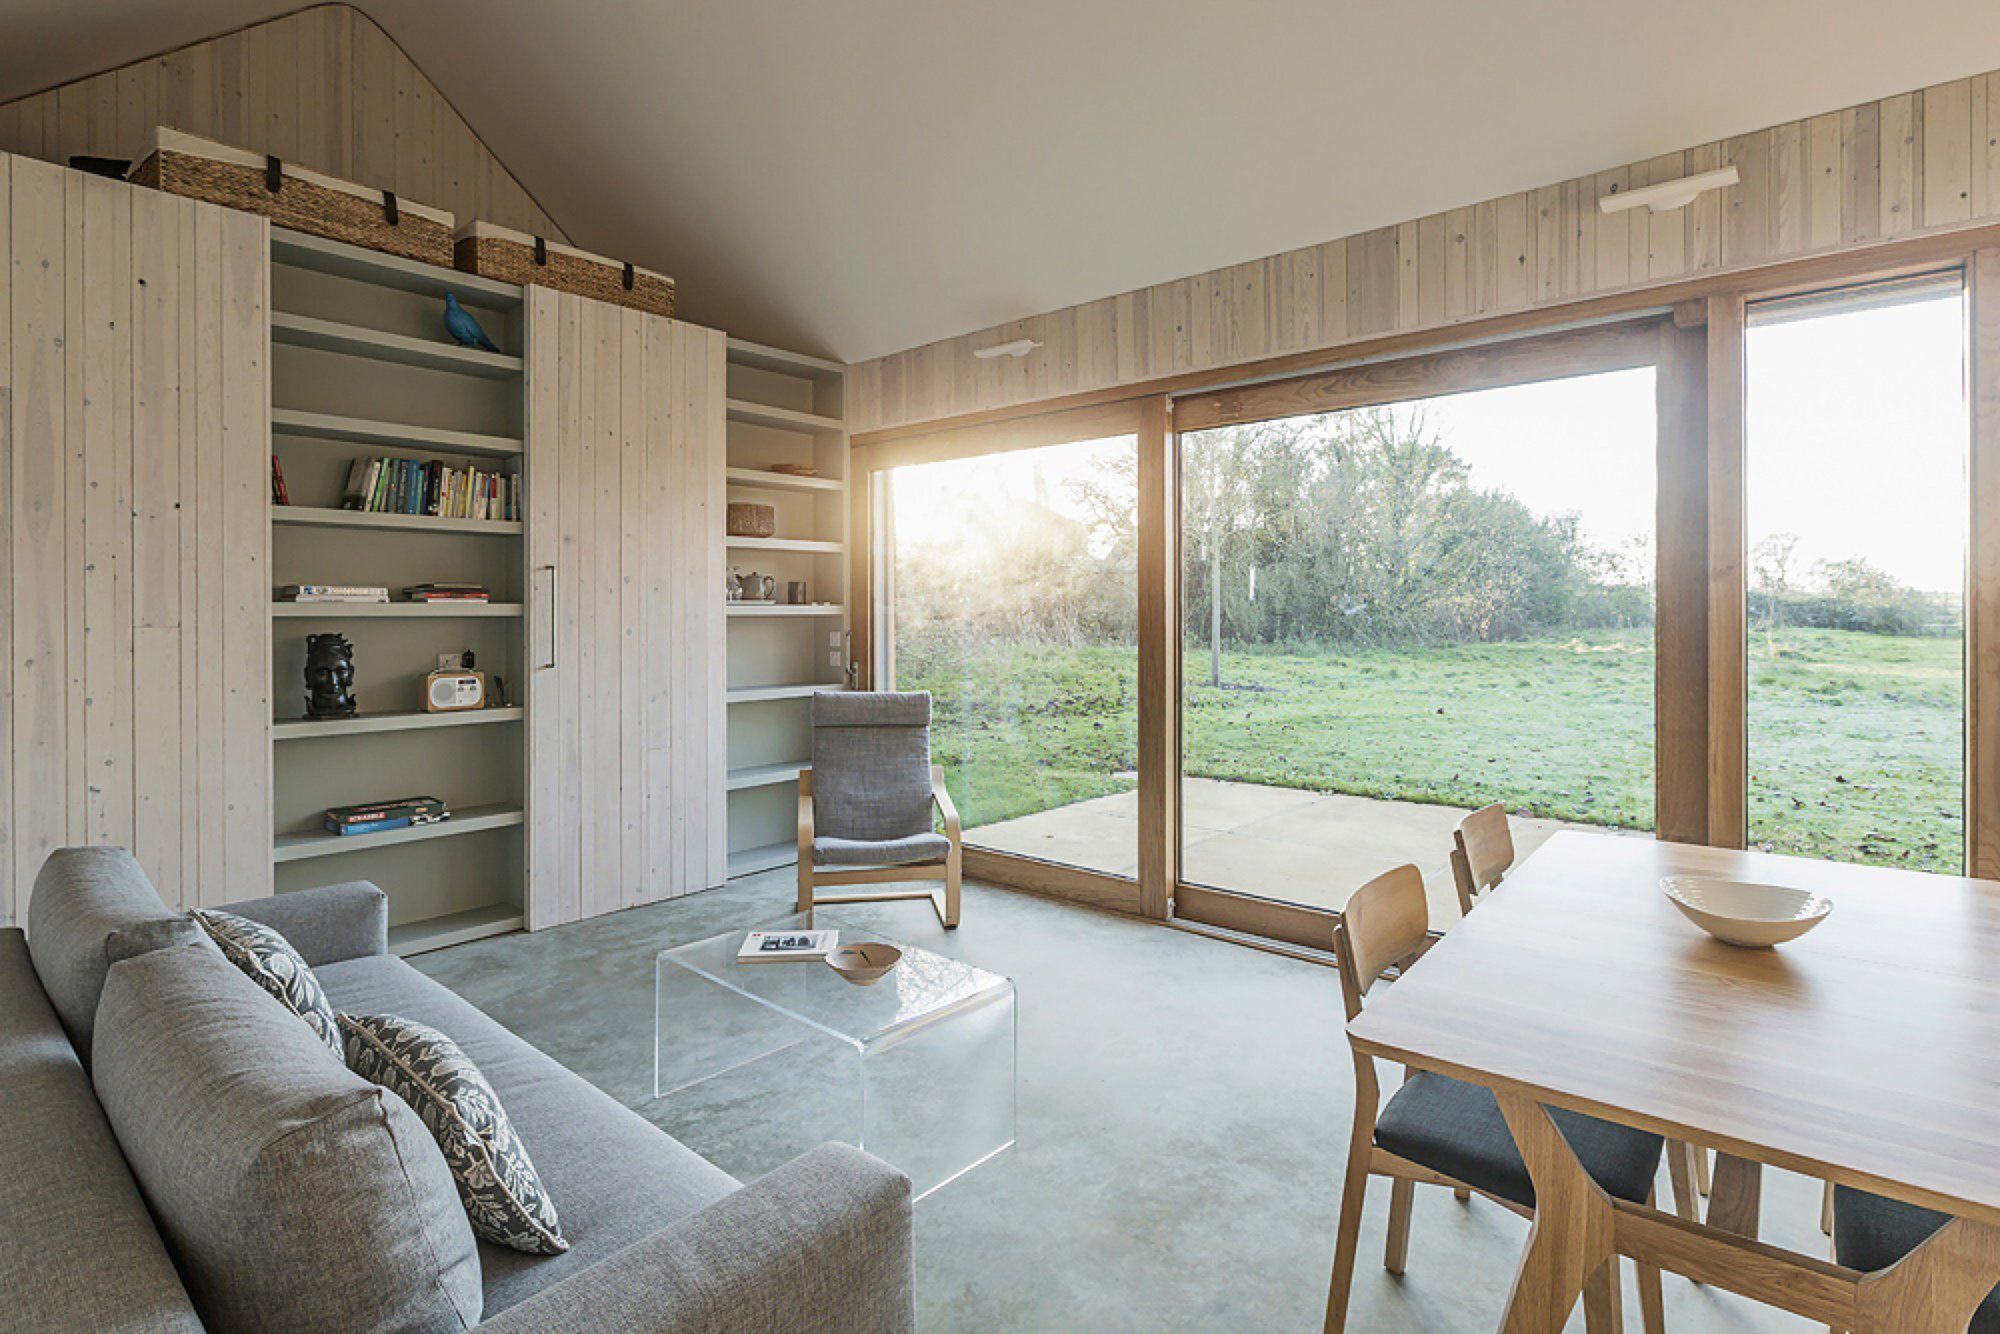 Garden Buildings Warmington - Ashworth Parkes Architects - UK - Living Room - Humble Homes